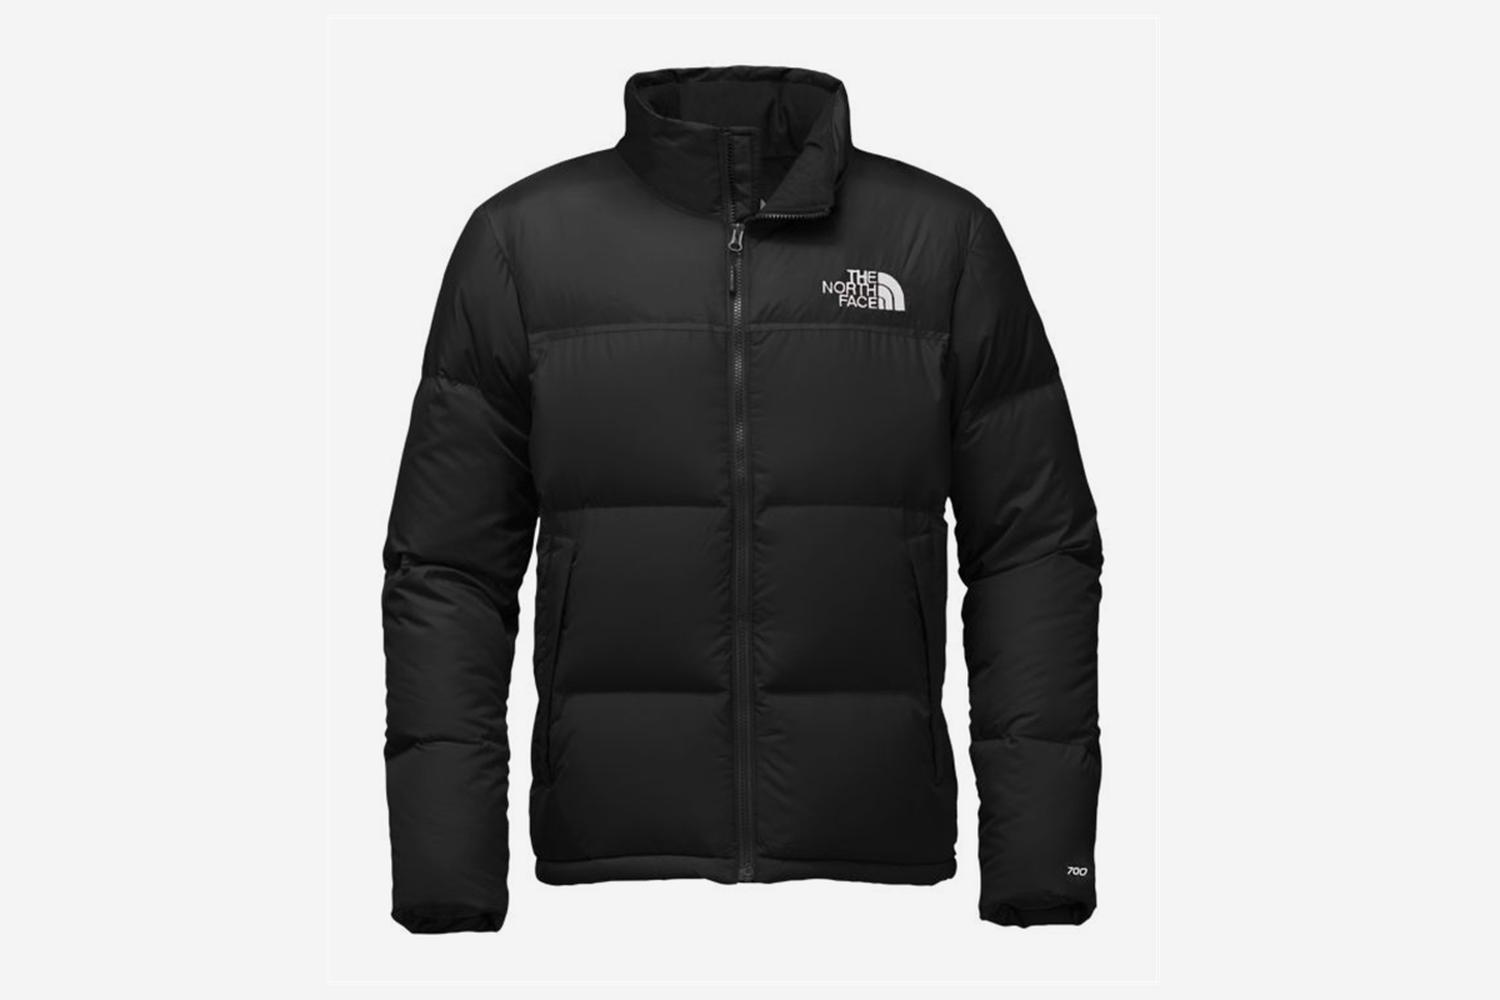 The North Face Nuptse Jacket: Our 8 Favorites to Buy Right Now